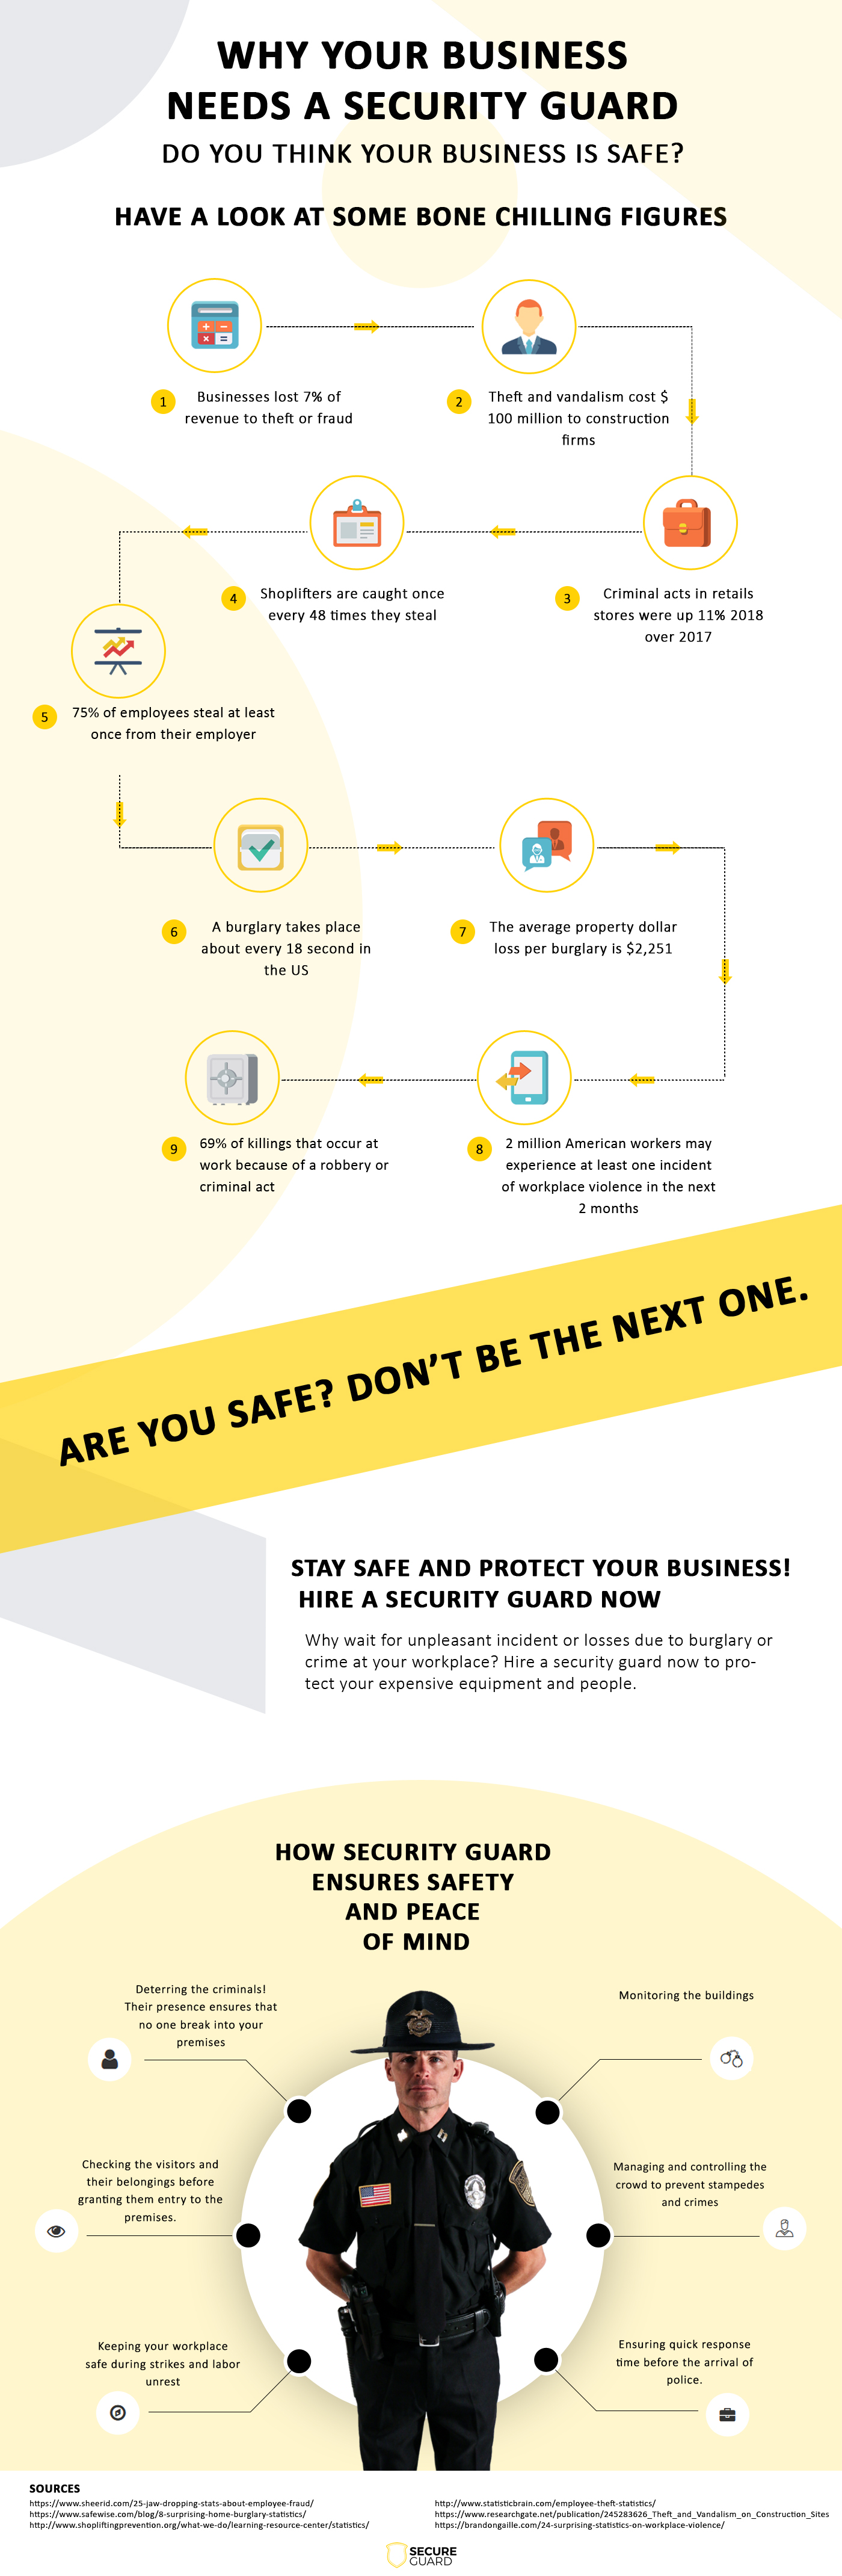 Why Your Business Needs Security Guard